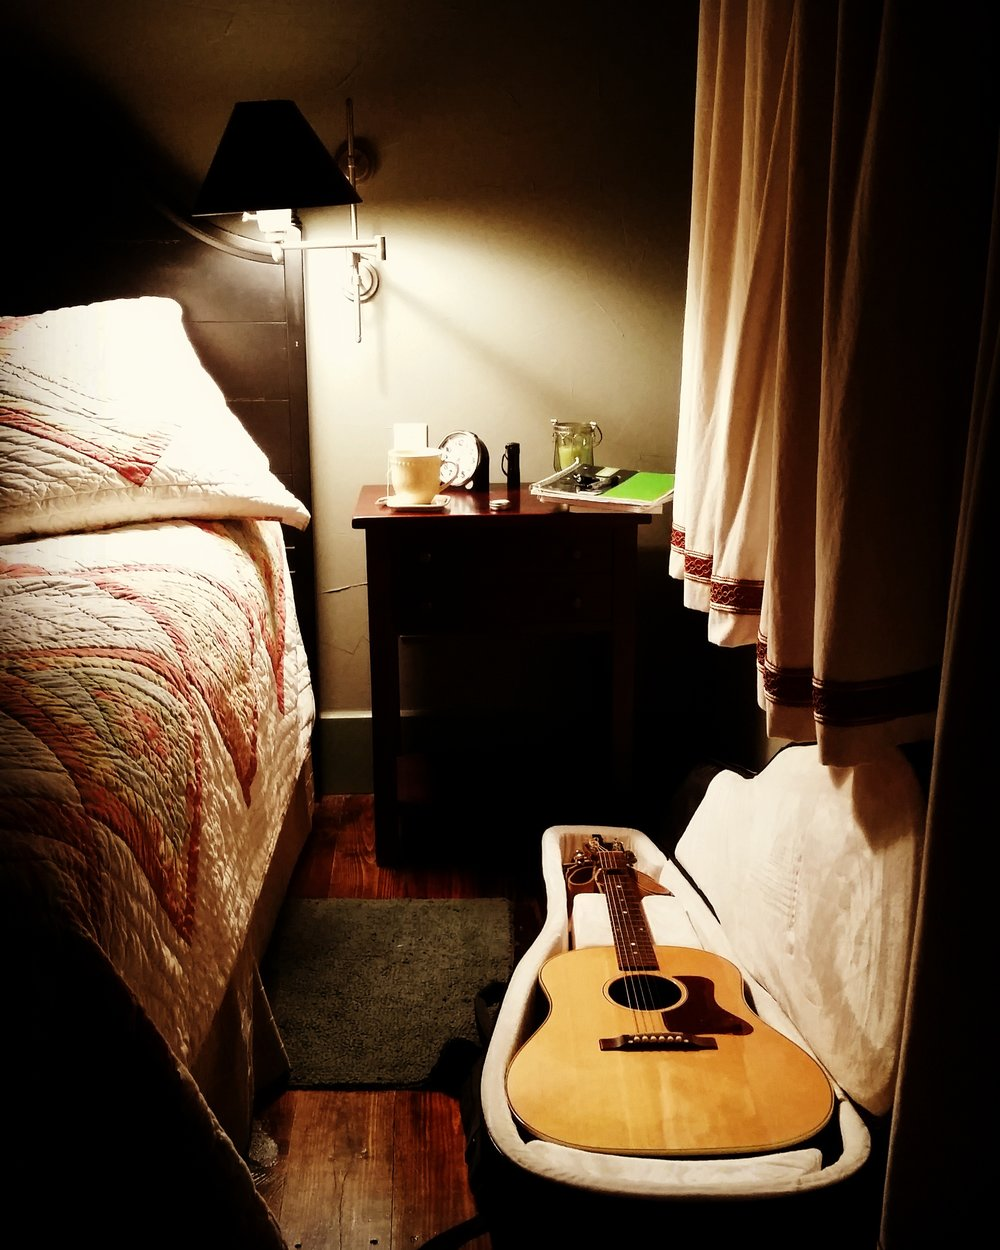 Happiness is... a quiet cabin, a bed with a quilt, and my guitar.